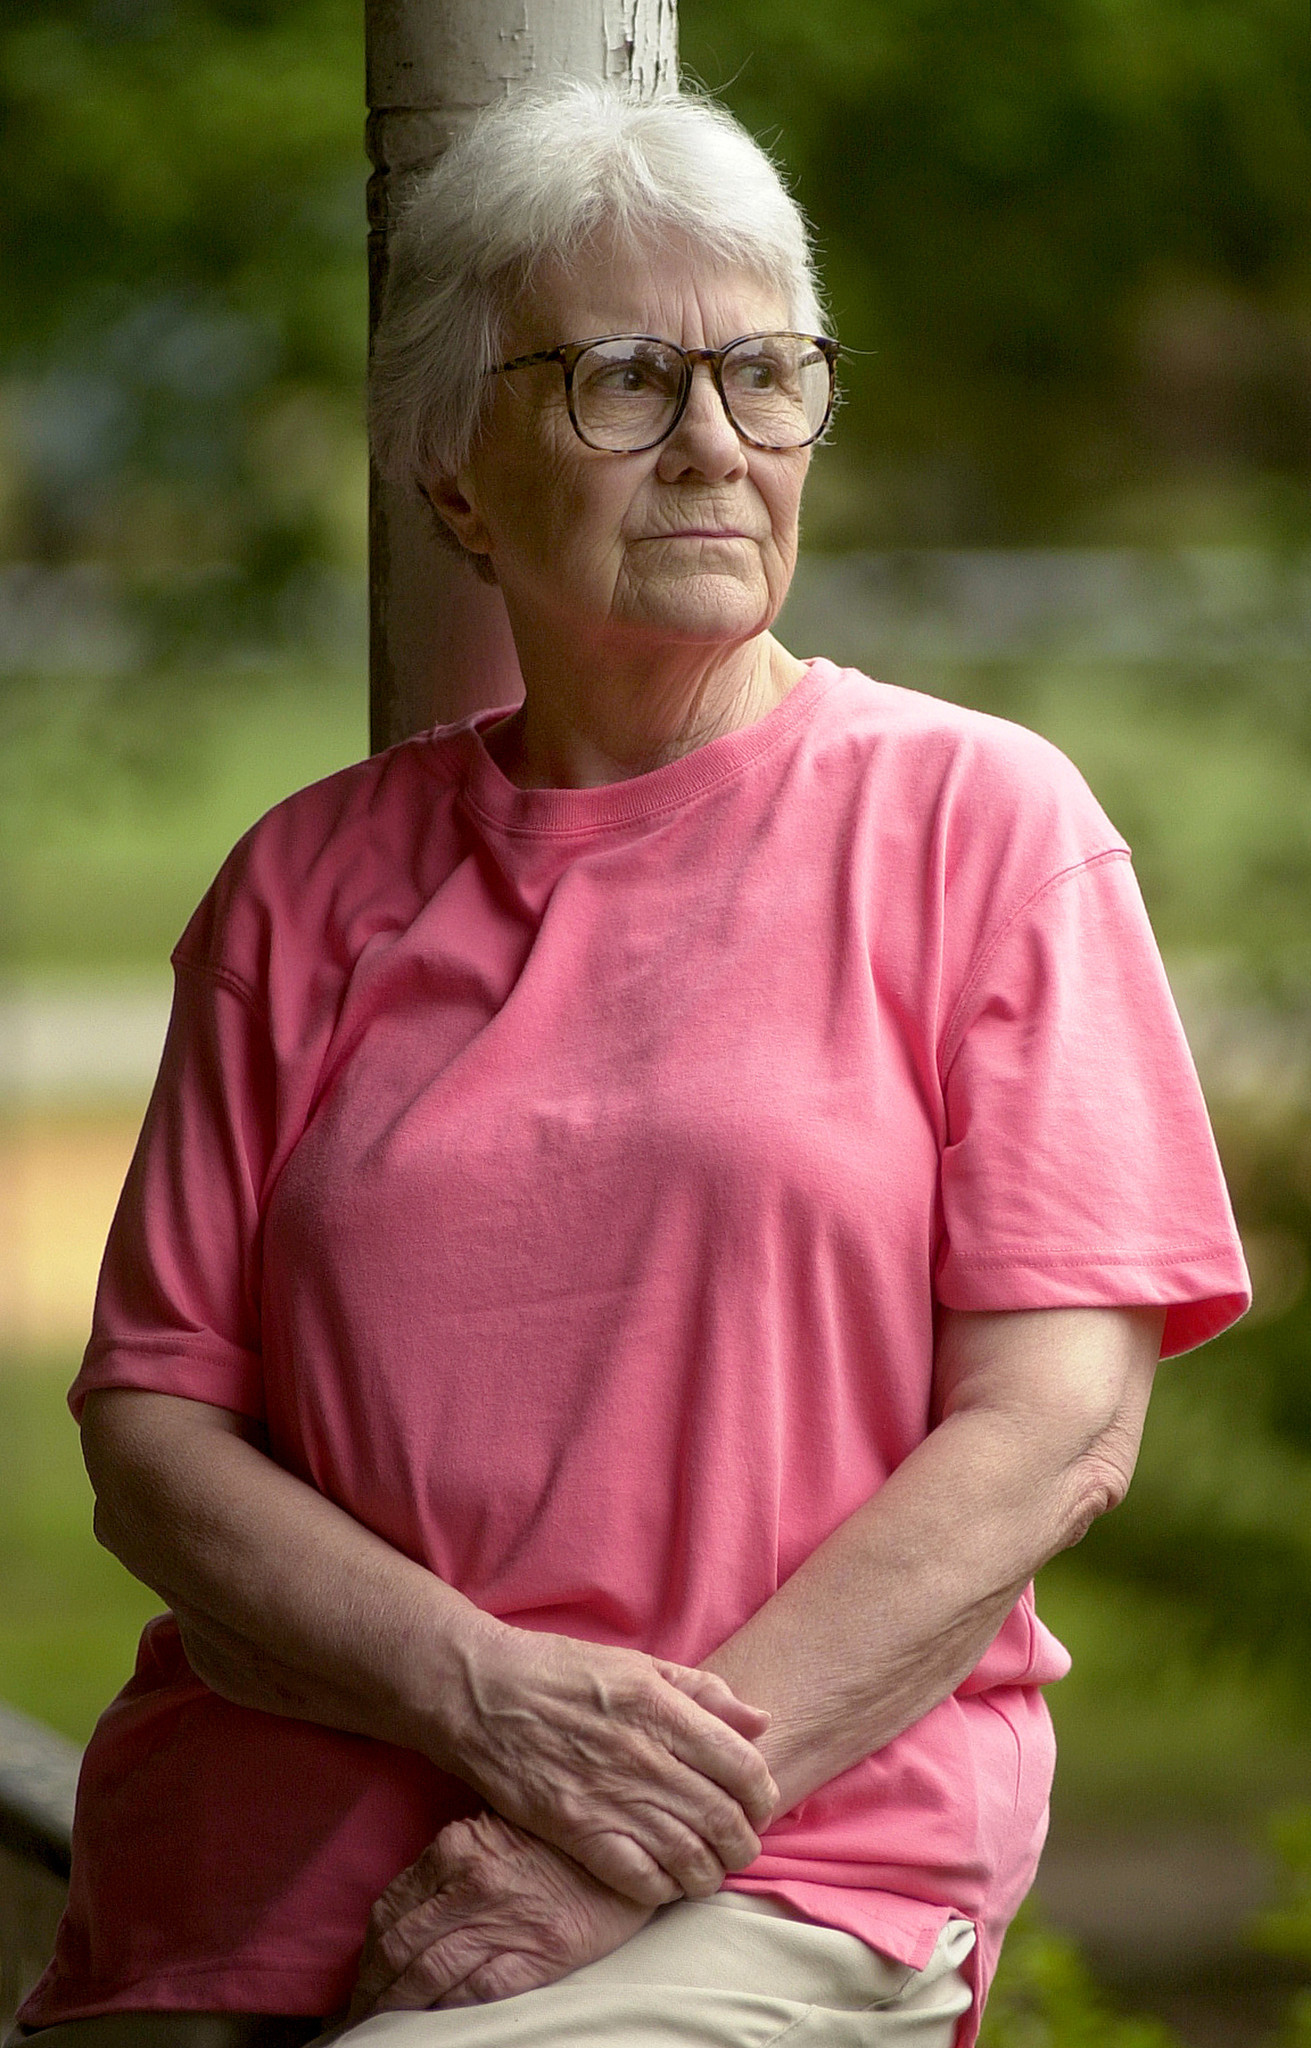 harper lee author of classic novel to kill a mockingbird dies harper lee author of classic novel to kill a mockingbird dies at 89 chicago tribune